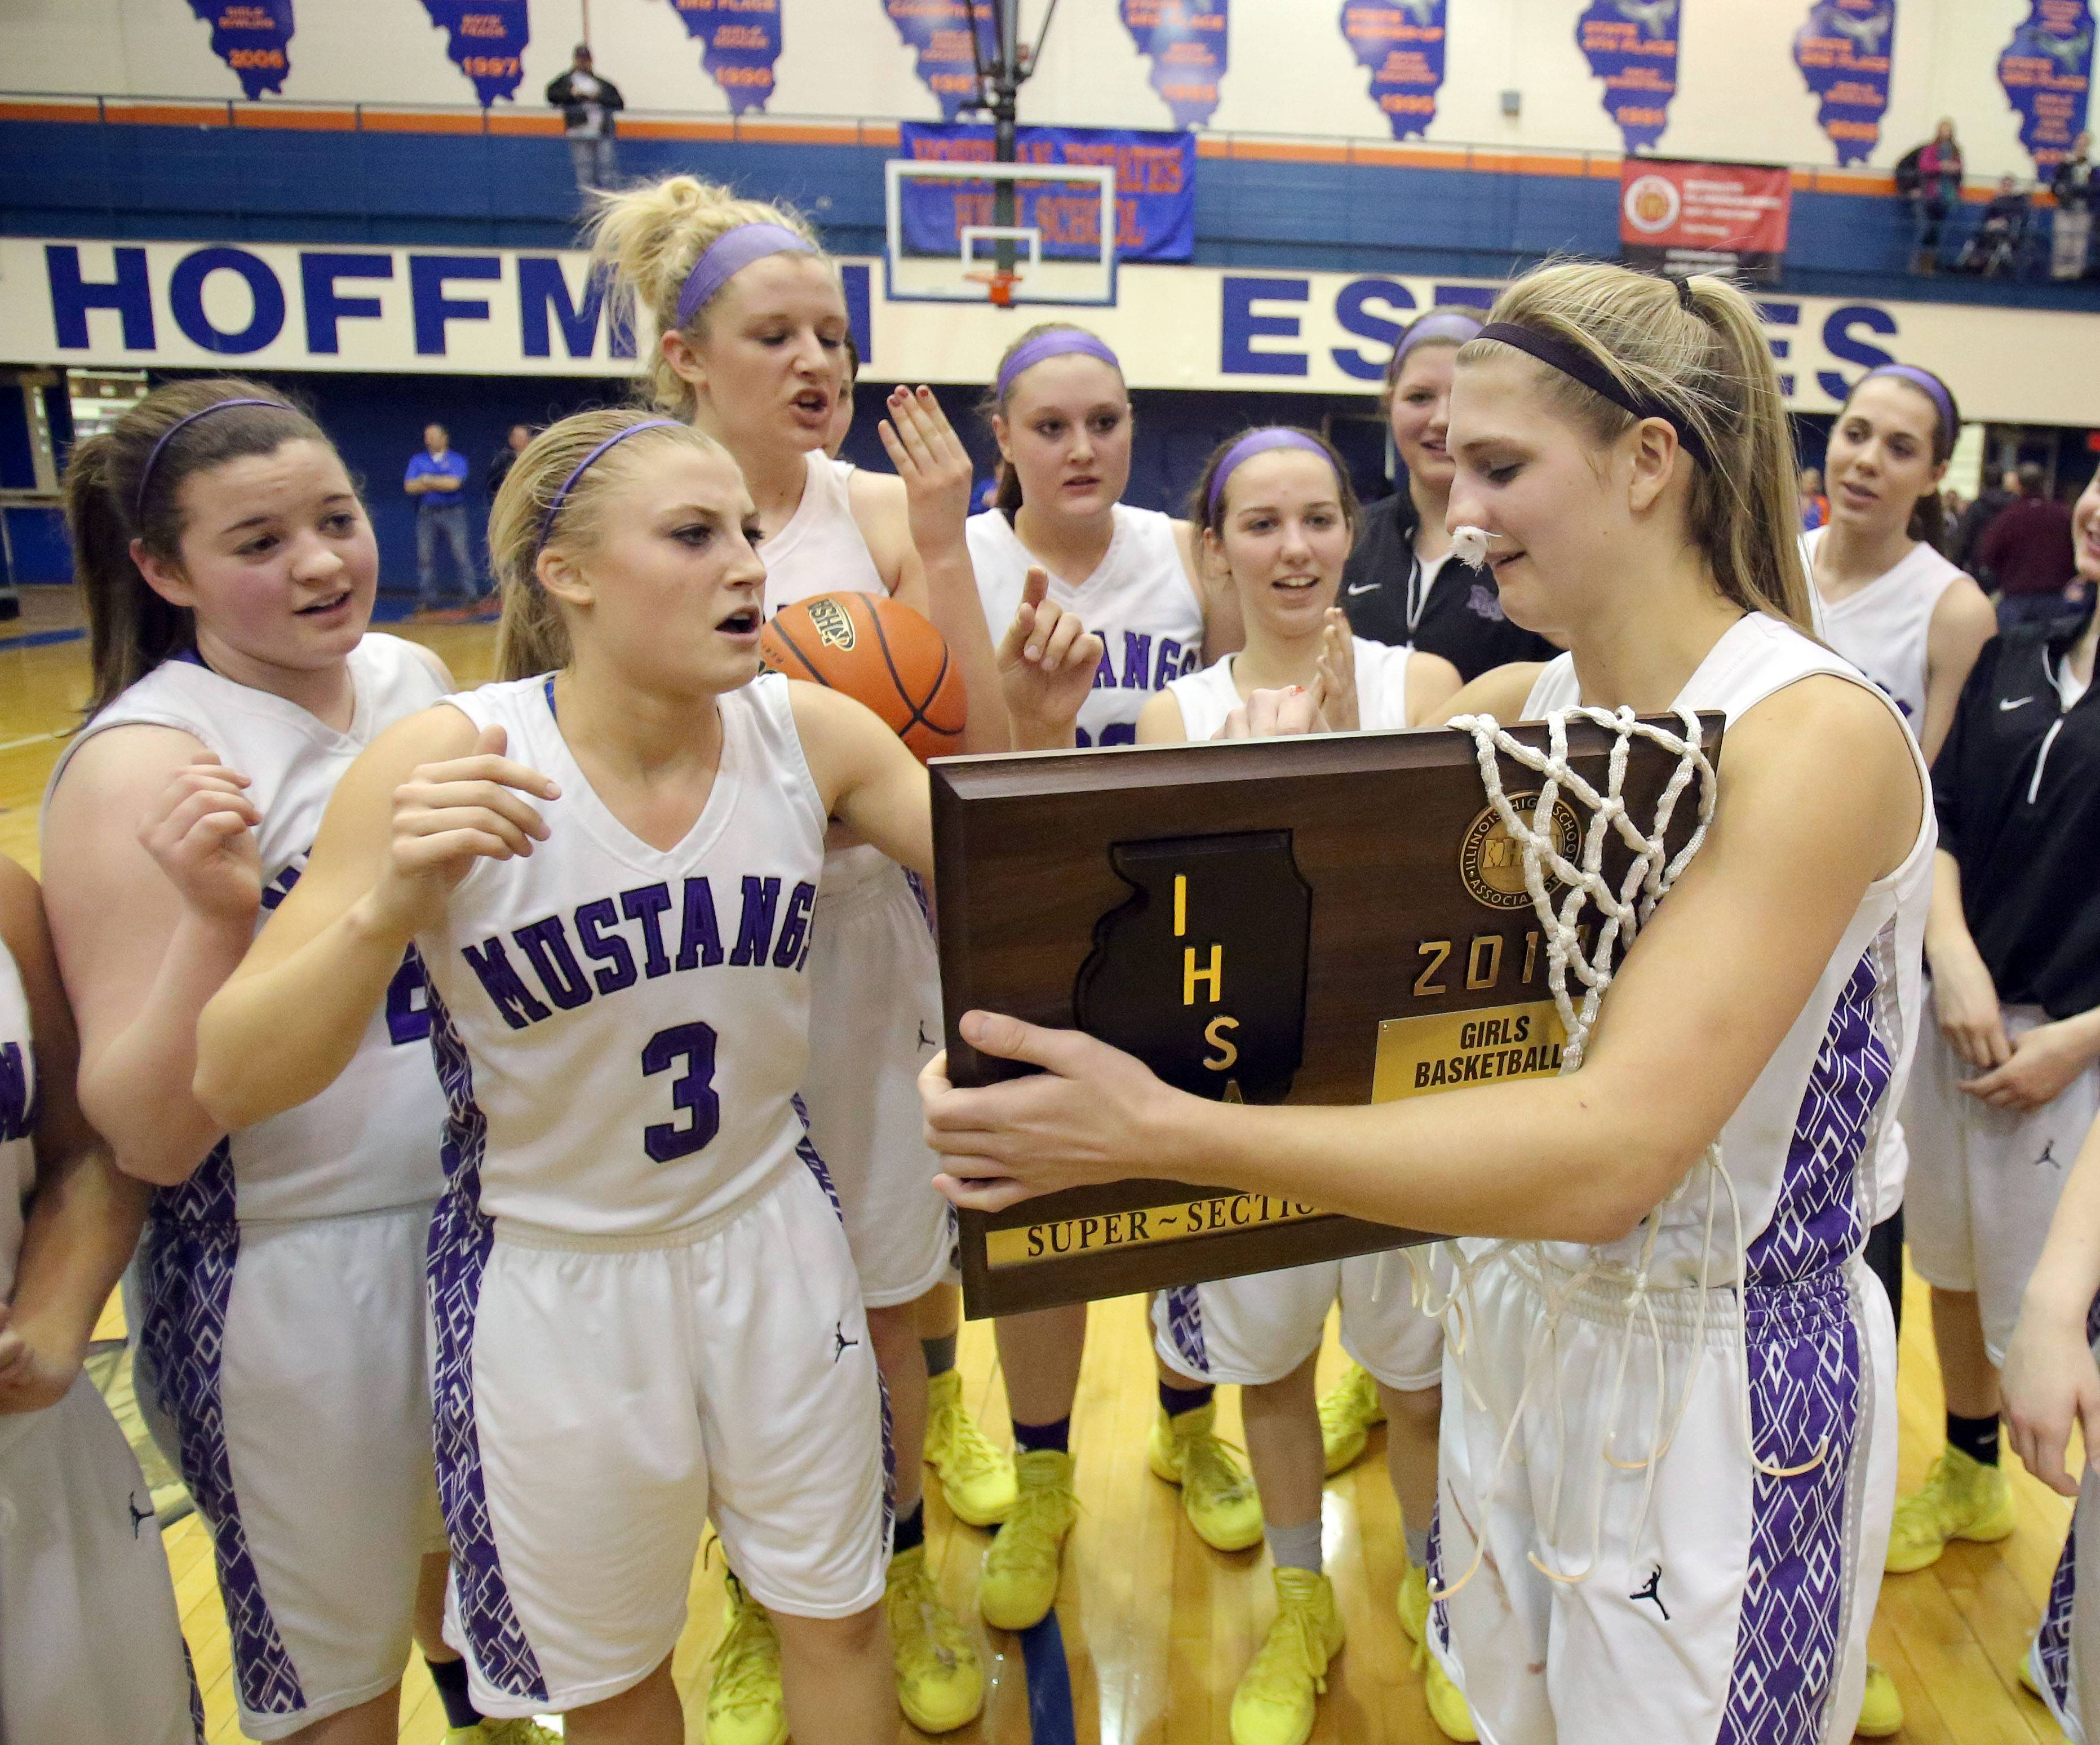 Rolling Meadows players gather around Alexis Glasgow as she receives the supersectional trophy after the Mustangs topped New Trier 60-43 in the Class 4A supersectional game at Hoffman Estates on Monday. Glasgow suffered a broken nose in the game but has been cleared to play in Friday's state semifinal against Geneva.